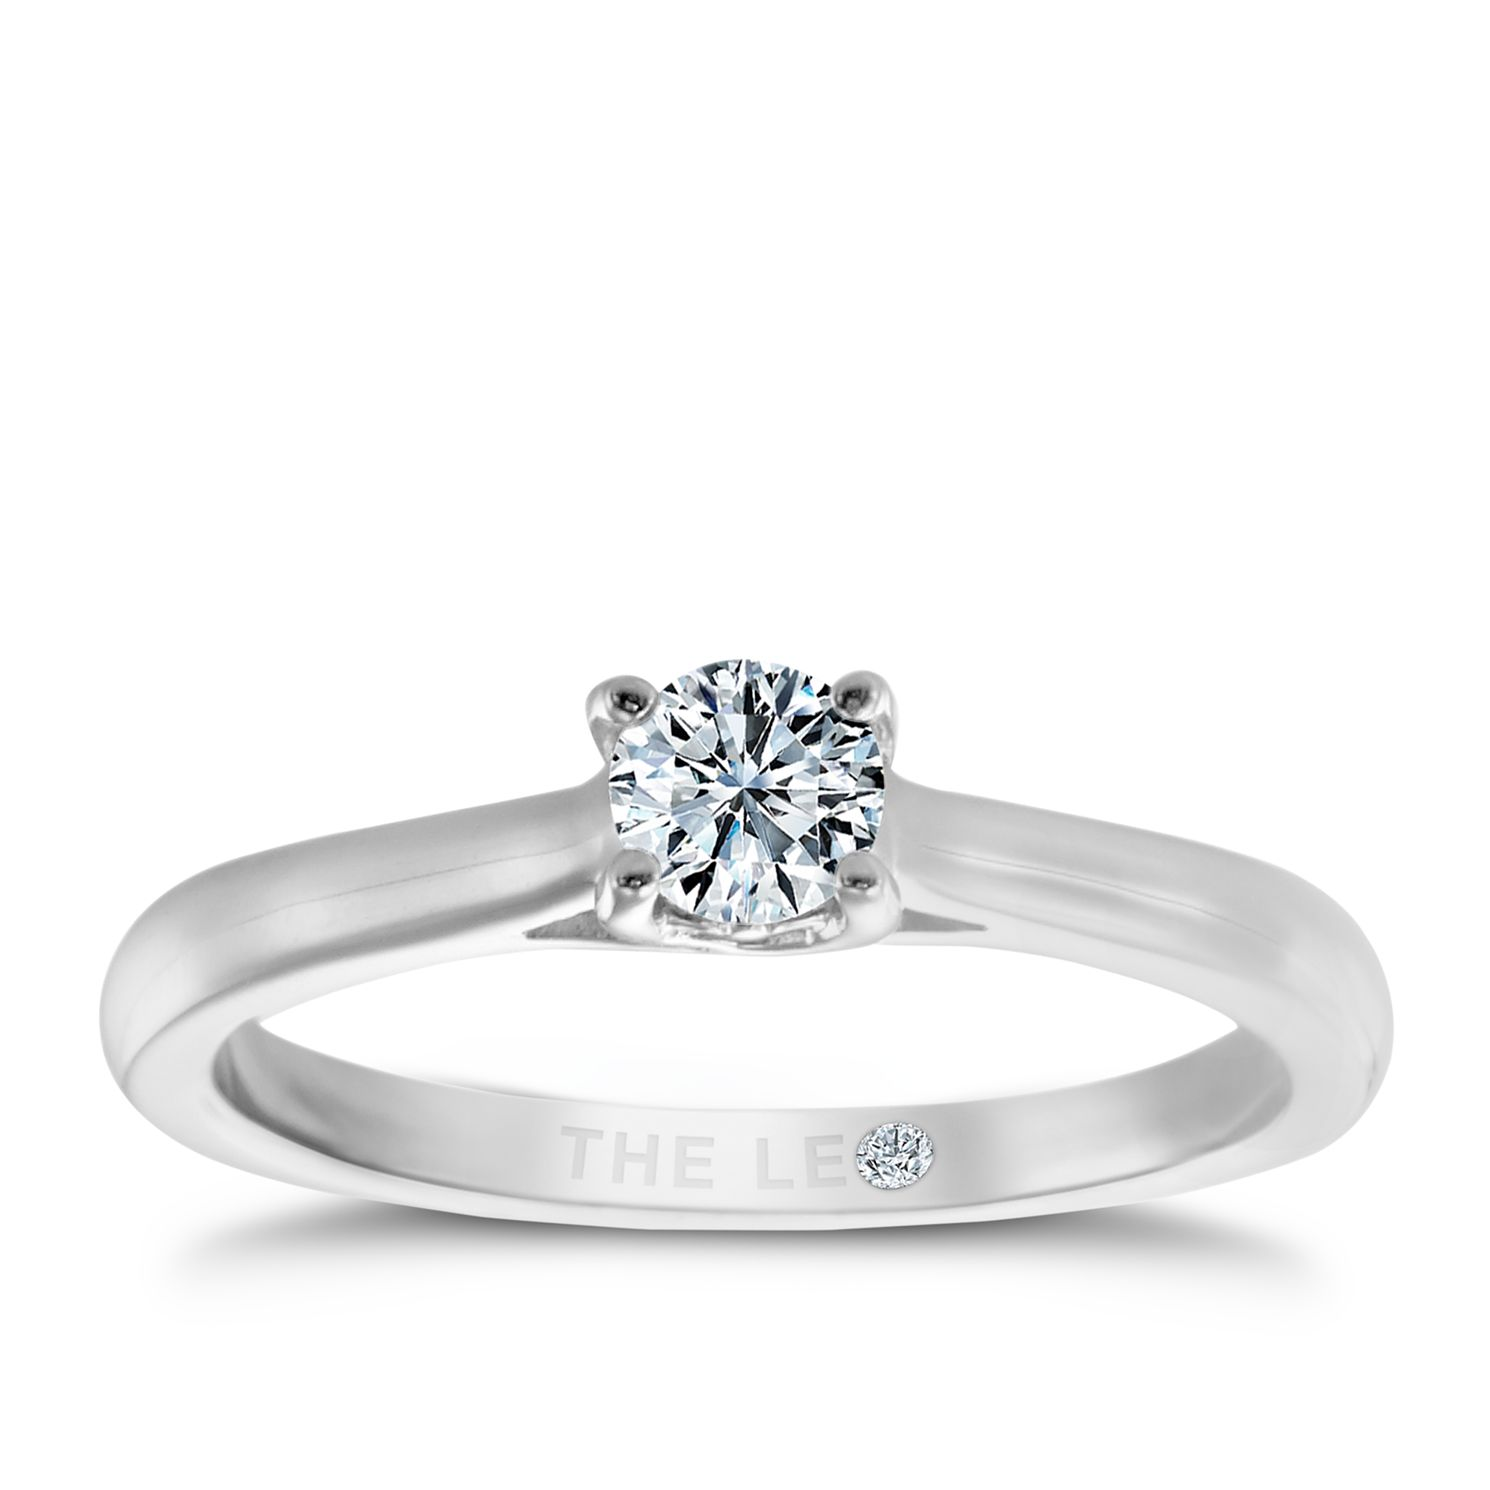 Leo Diamond Platinum 1/4ct I-Si2 Solitaire Ring - Product number 6021662